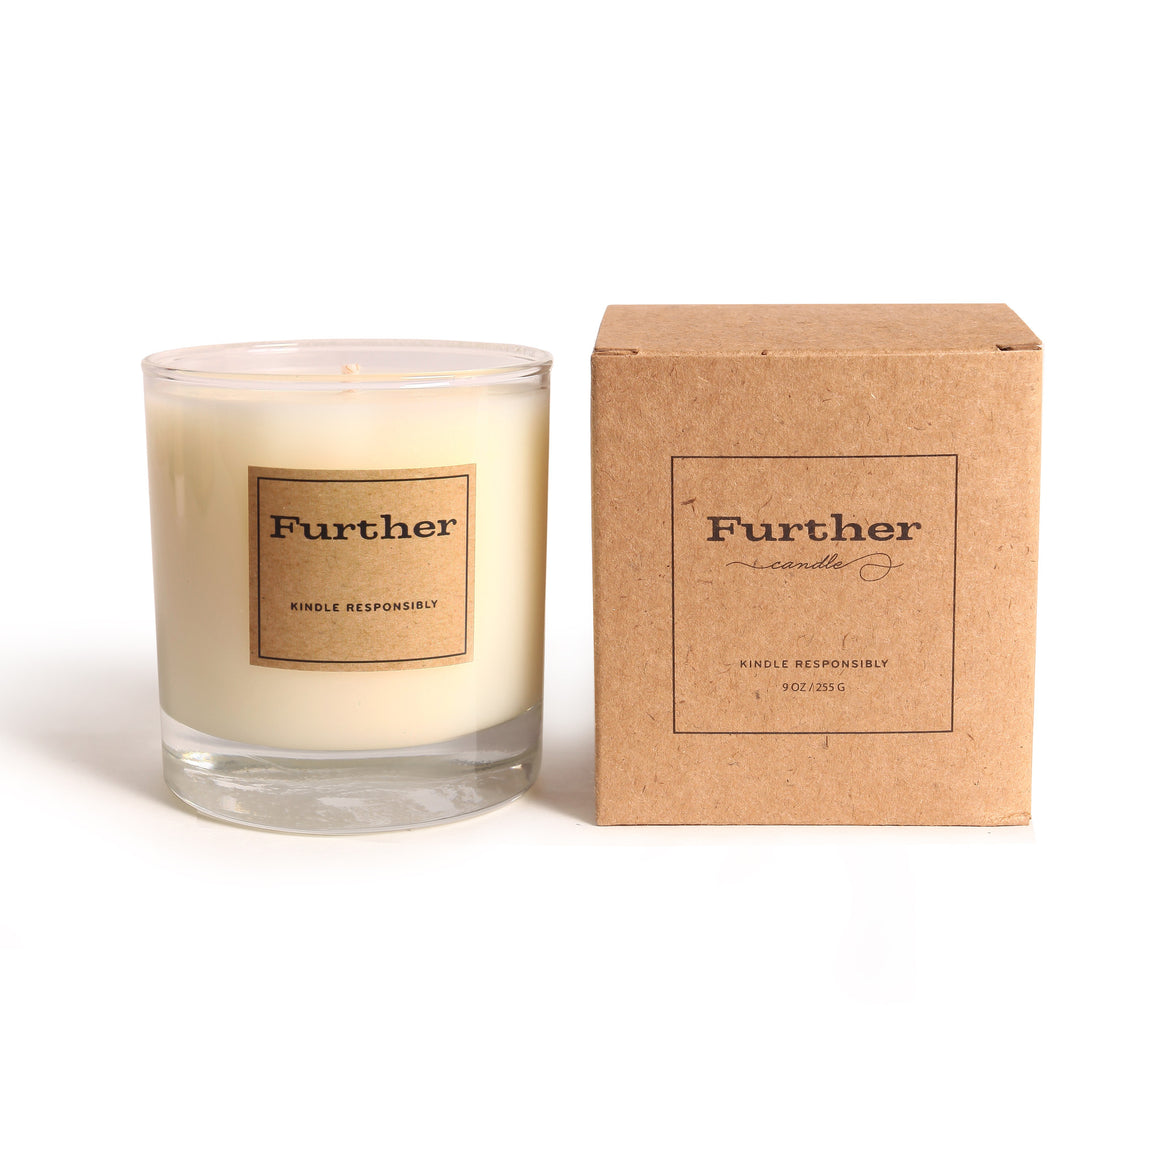 9 oz. Glass Candle – Further Soy Candle